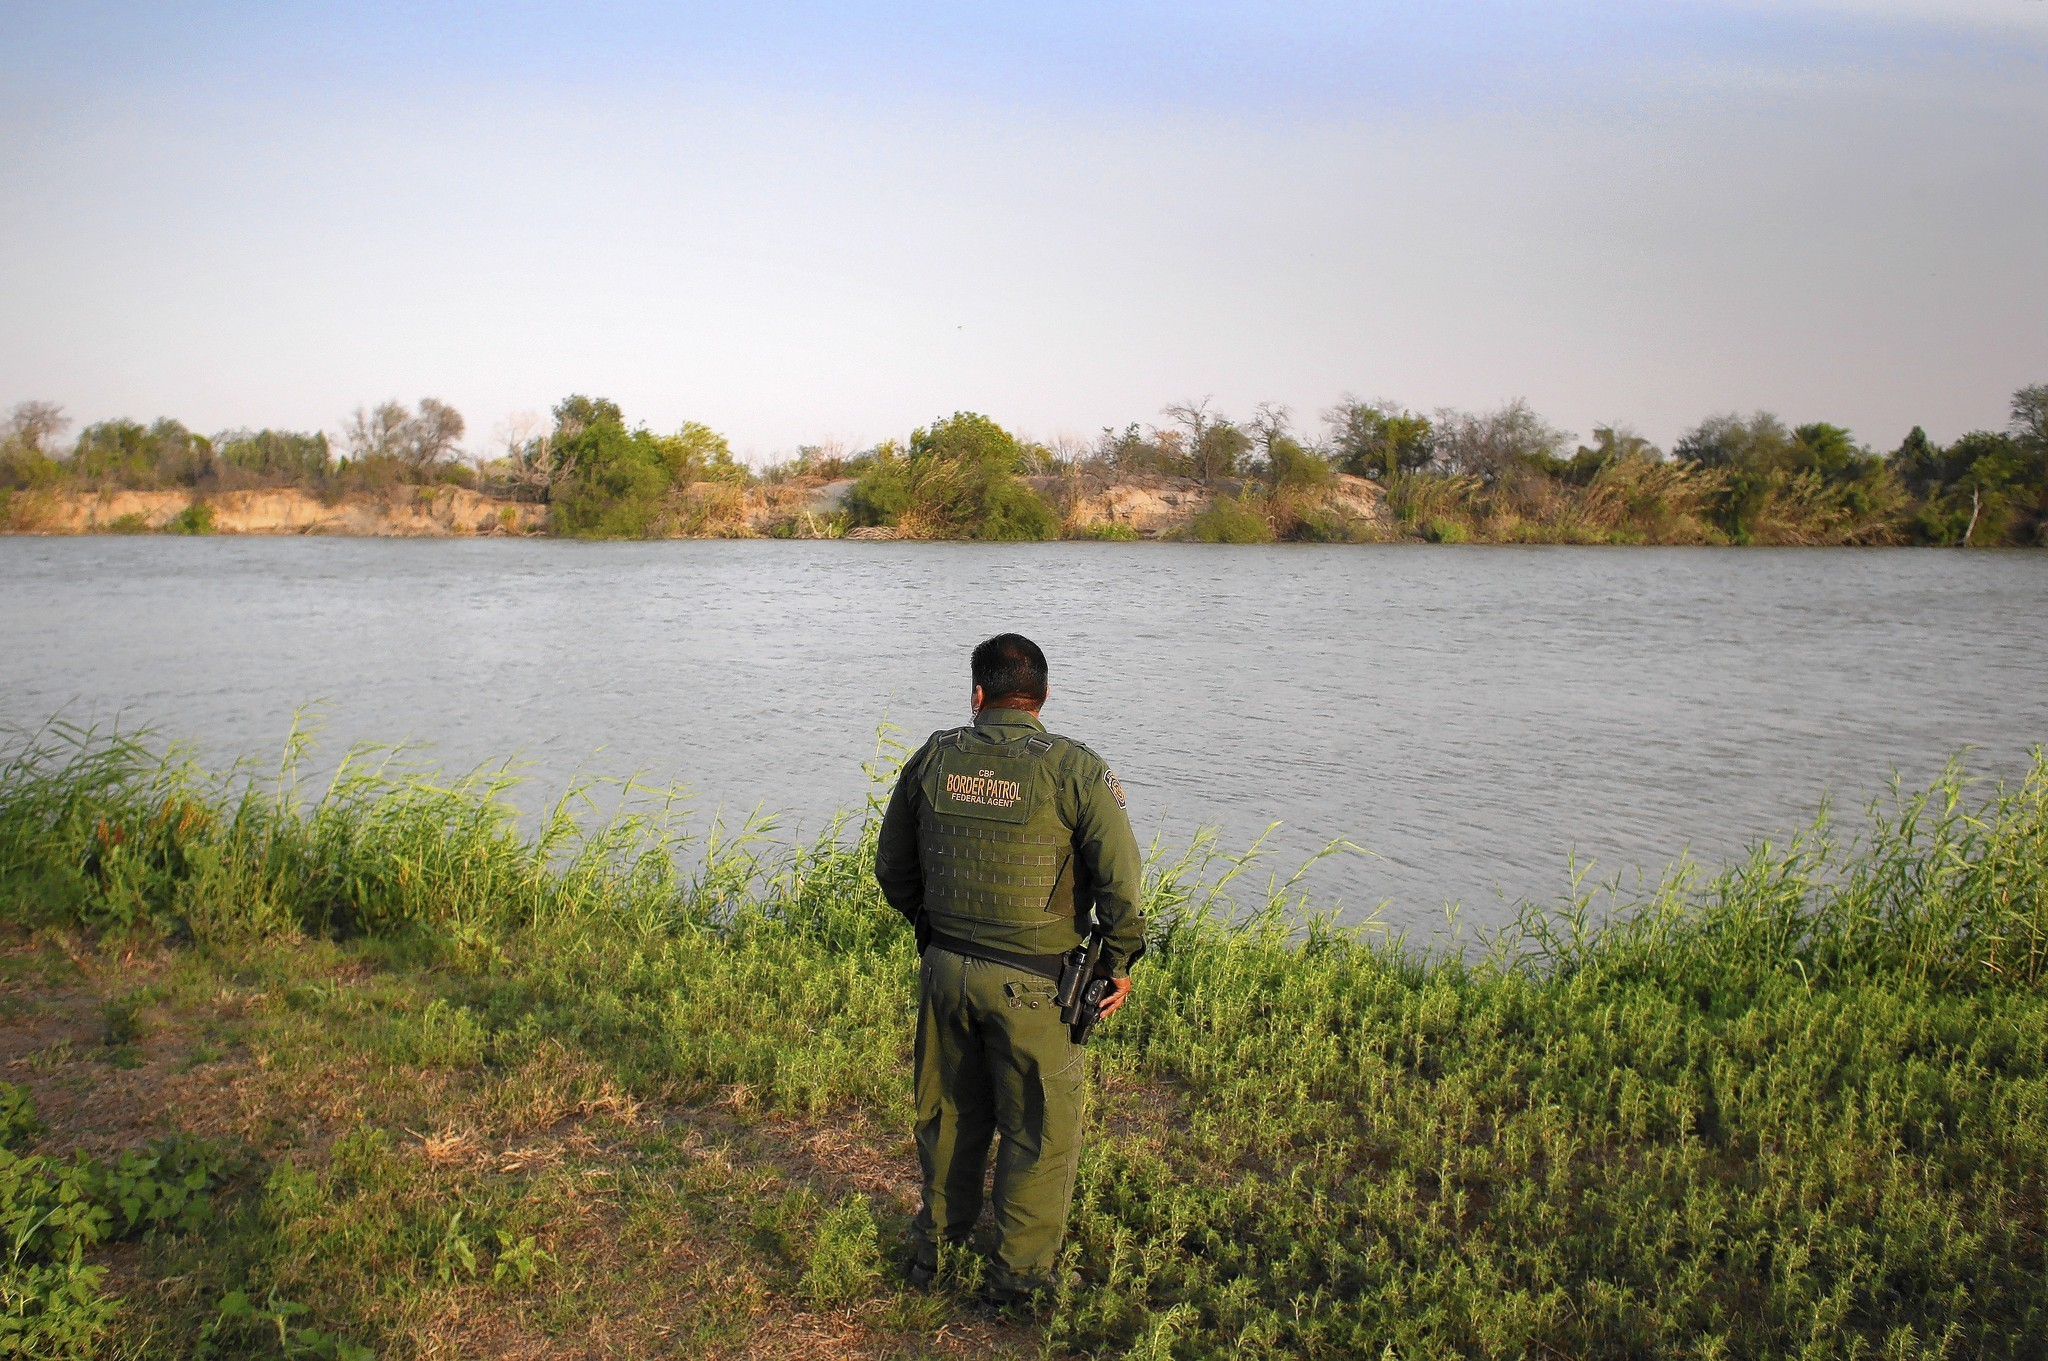 An independent report criticizes Border Patrol agents' use of force, including in several incidents in which they shot at people throwing rocks from the Mexican side of the border, sometimes with deadly results.